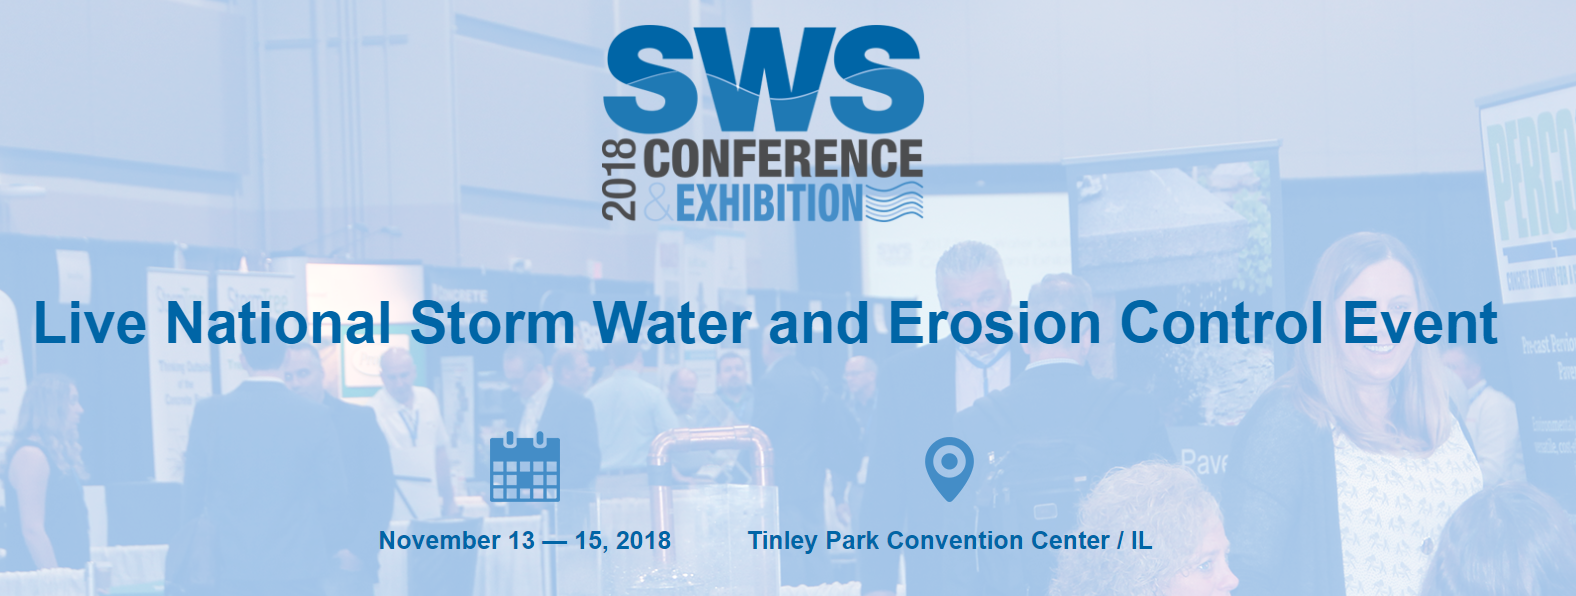 Live National Storm Water and Erosion Control Event